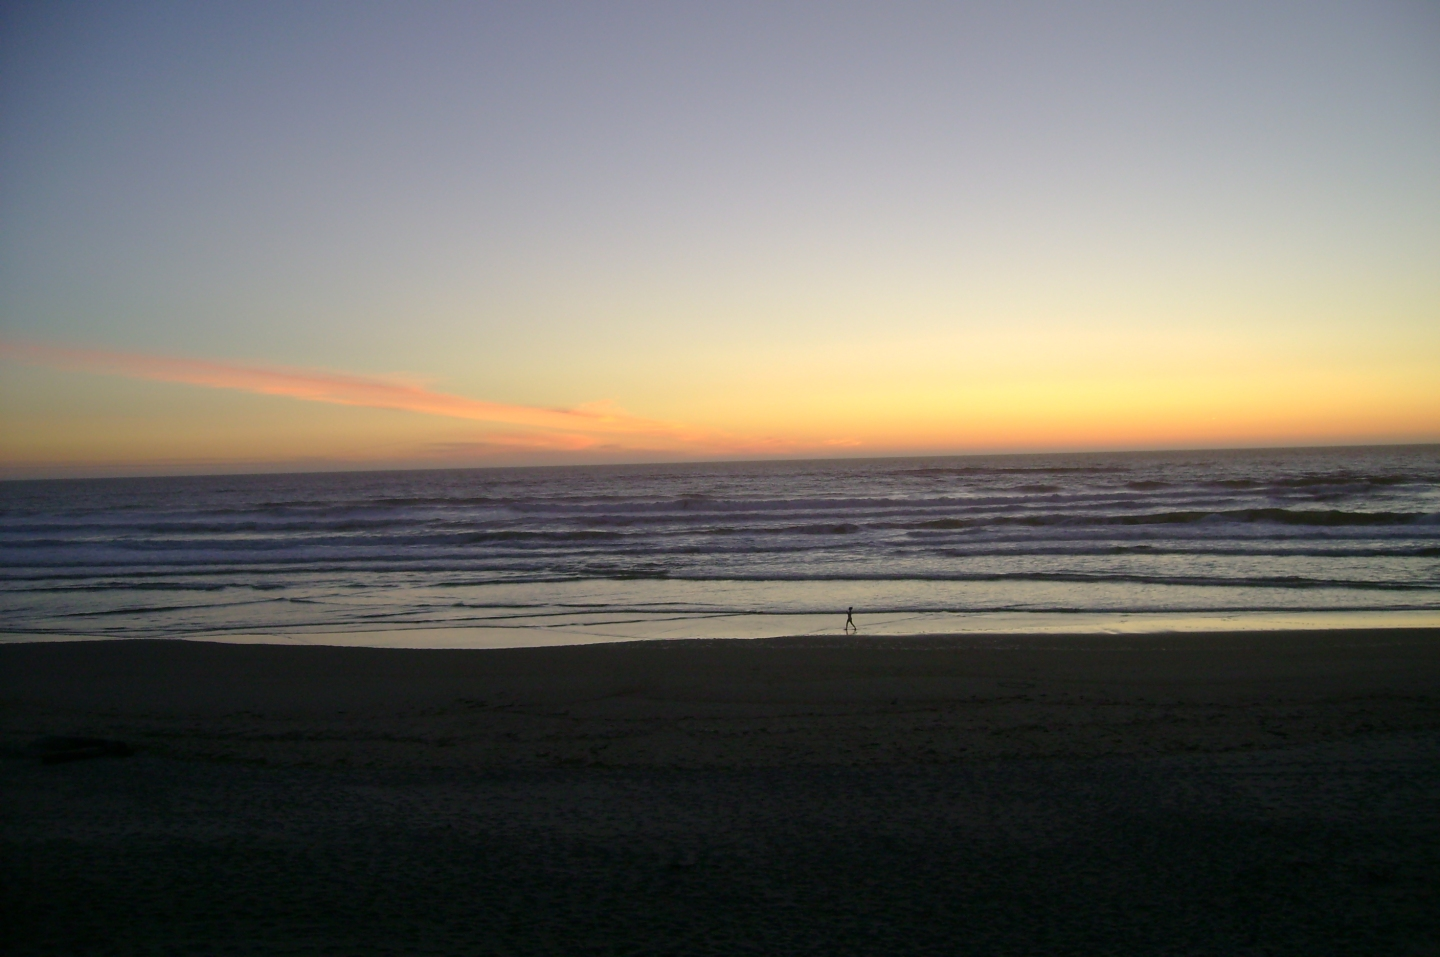 small_things_walk_alone_on_beach_at_sunset_2